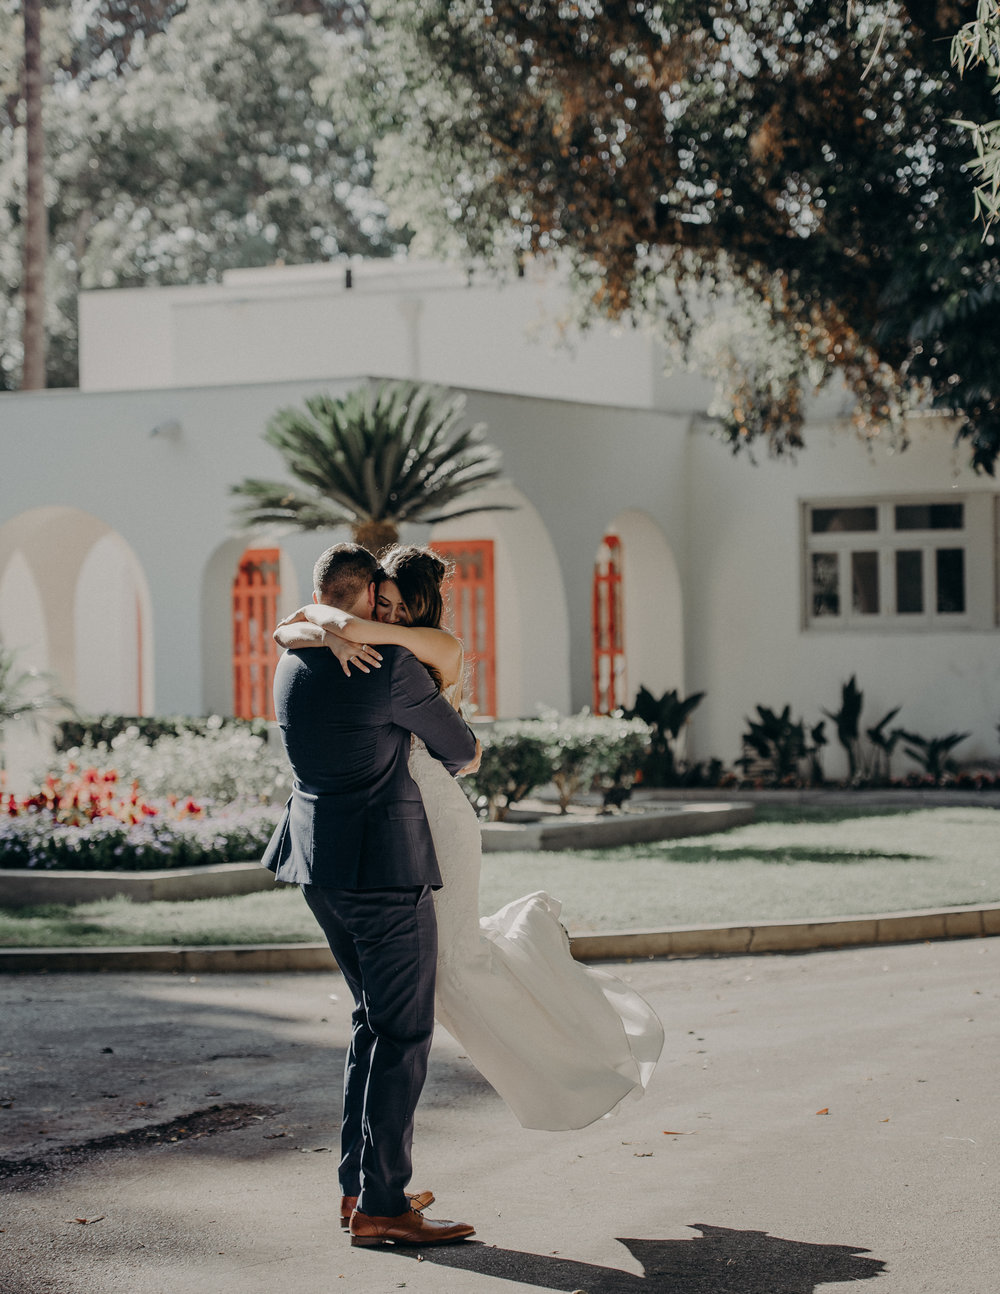 Wedding Photographer in Los Angeles - The Clarke Estate Wedding - IsaiahAndTaylor.com-068.jpg